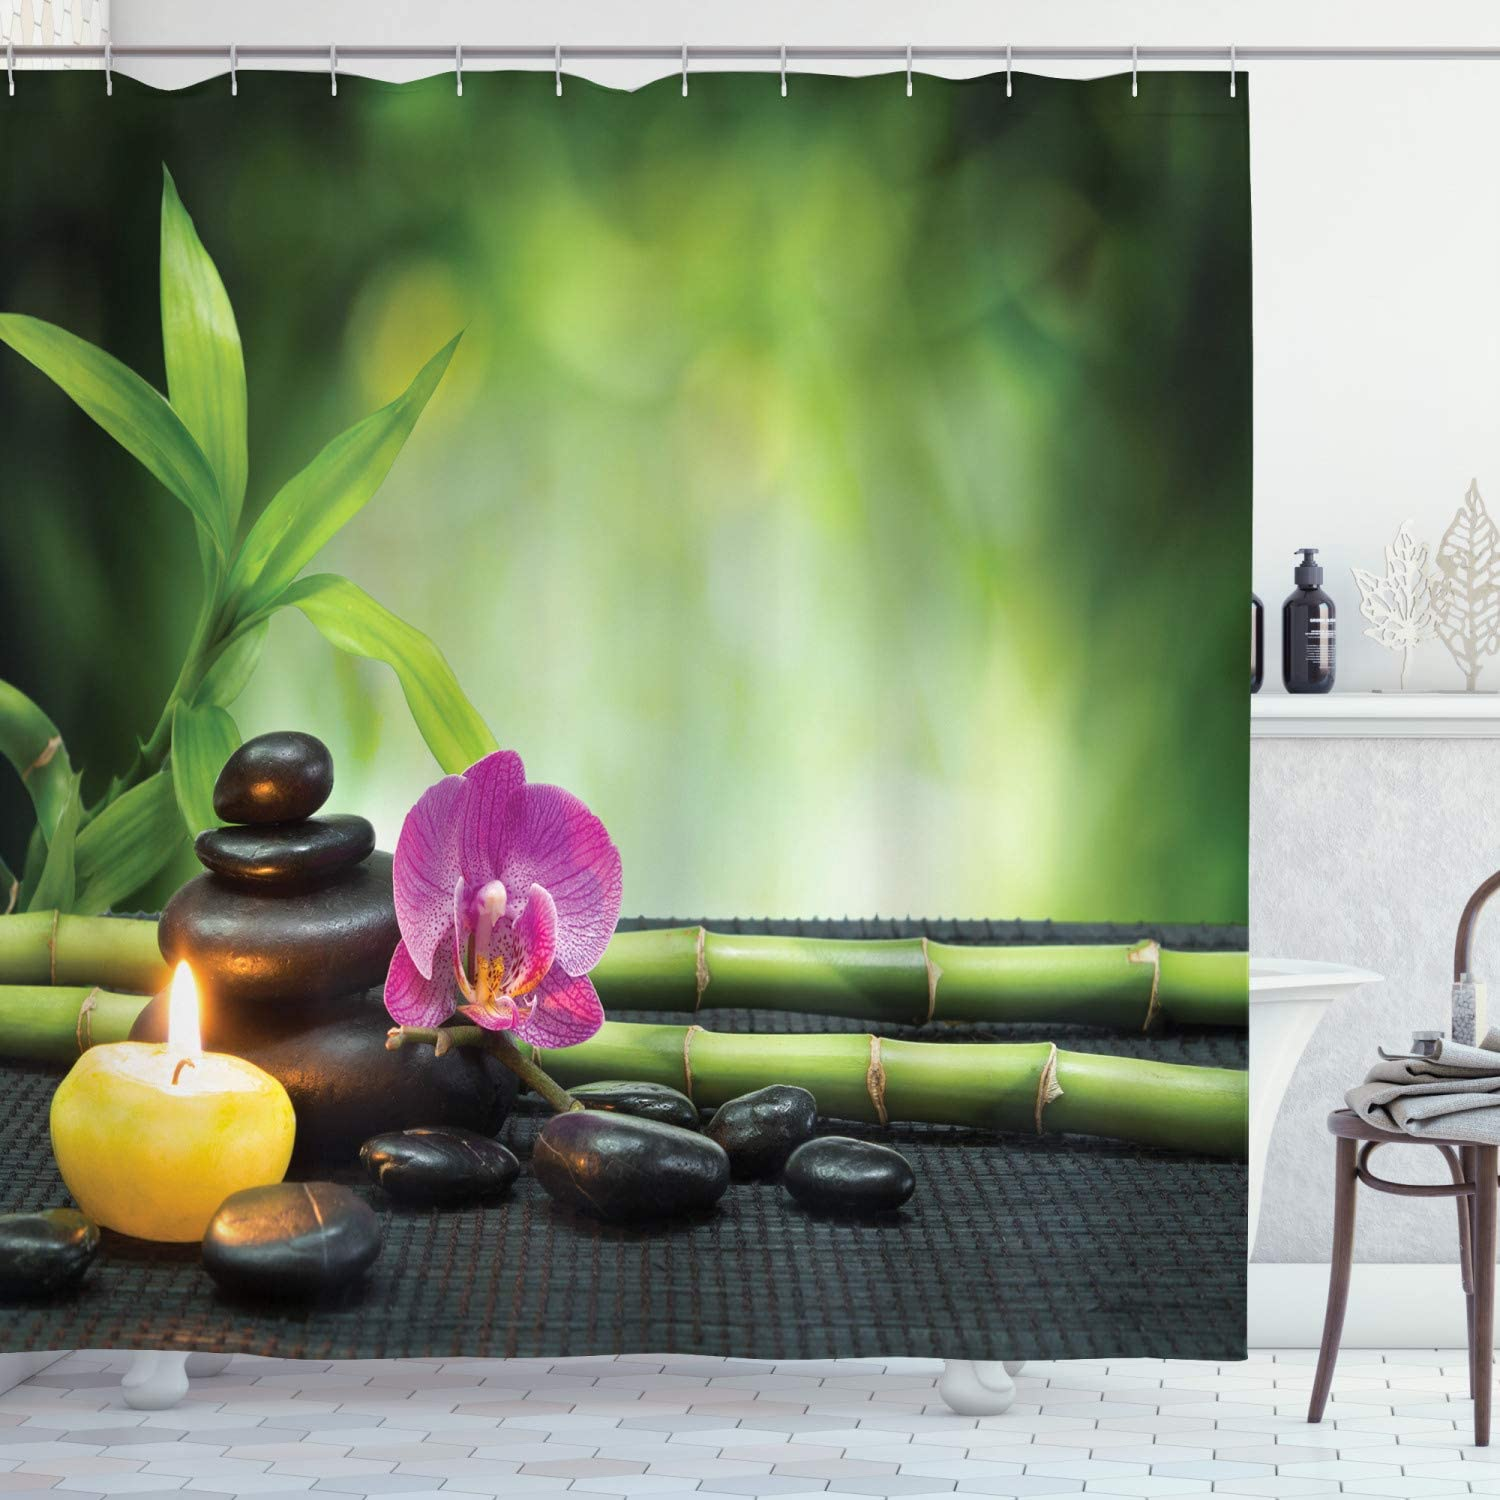 Ambesonne Spa Shower Curtain, Orchid Bamboo Stems Stones Japanese Alternative Feng Shui Elements, Cloth Fabric Bathroom Decor Set with Hooks, 84